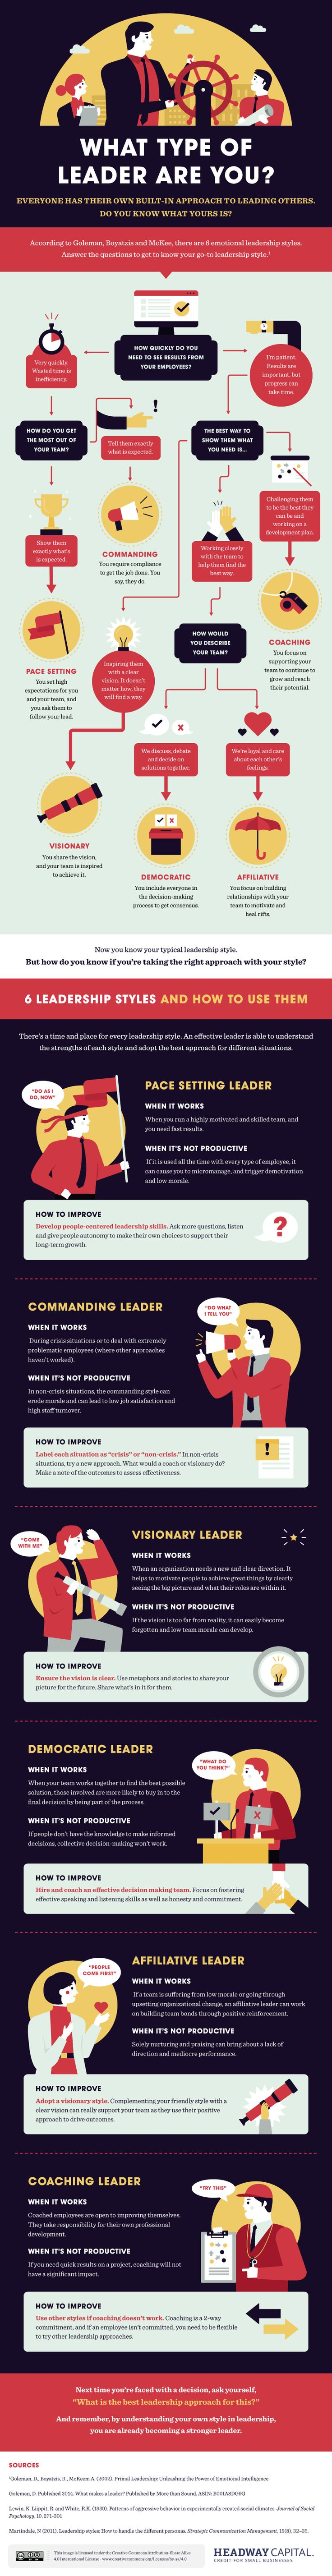 best images about leadership traits nelson whatever your management style the important thing is to know what your strengths are and which skills need to develop this infographic offers a great